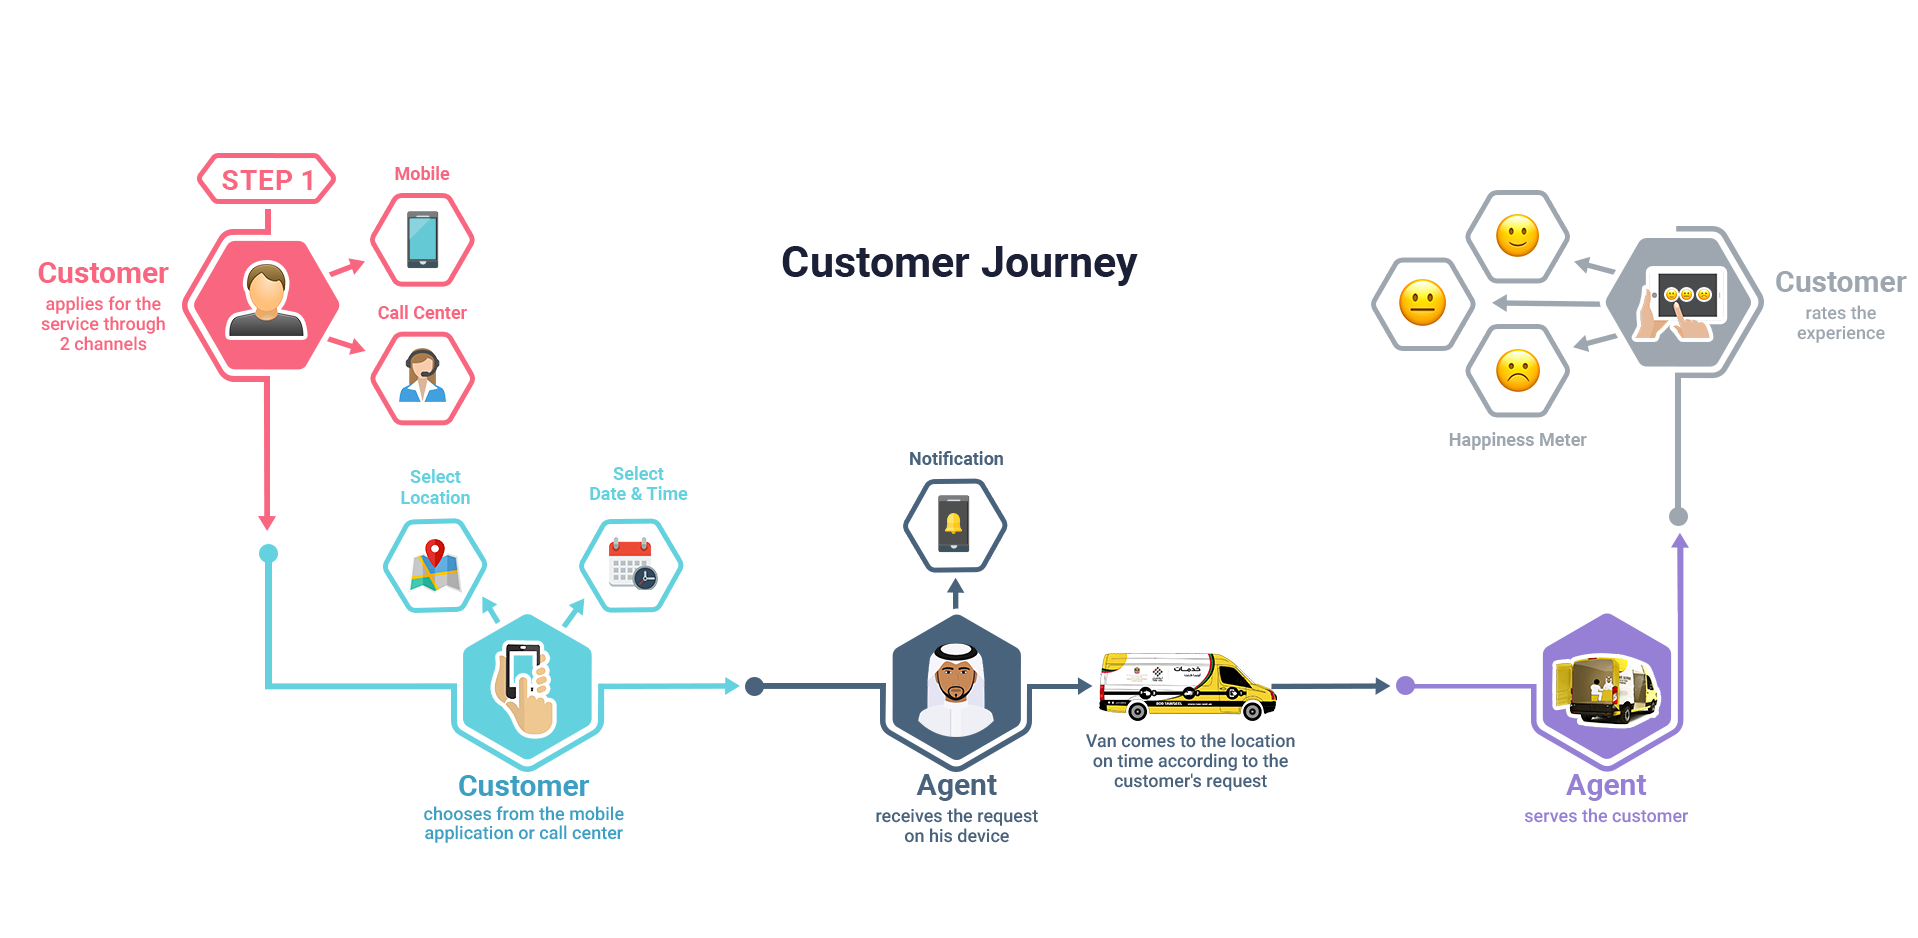 About >> Customer Journey - Tawseel